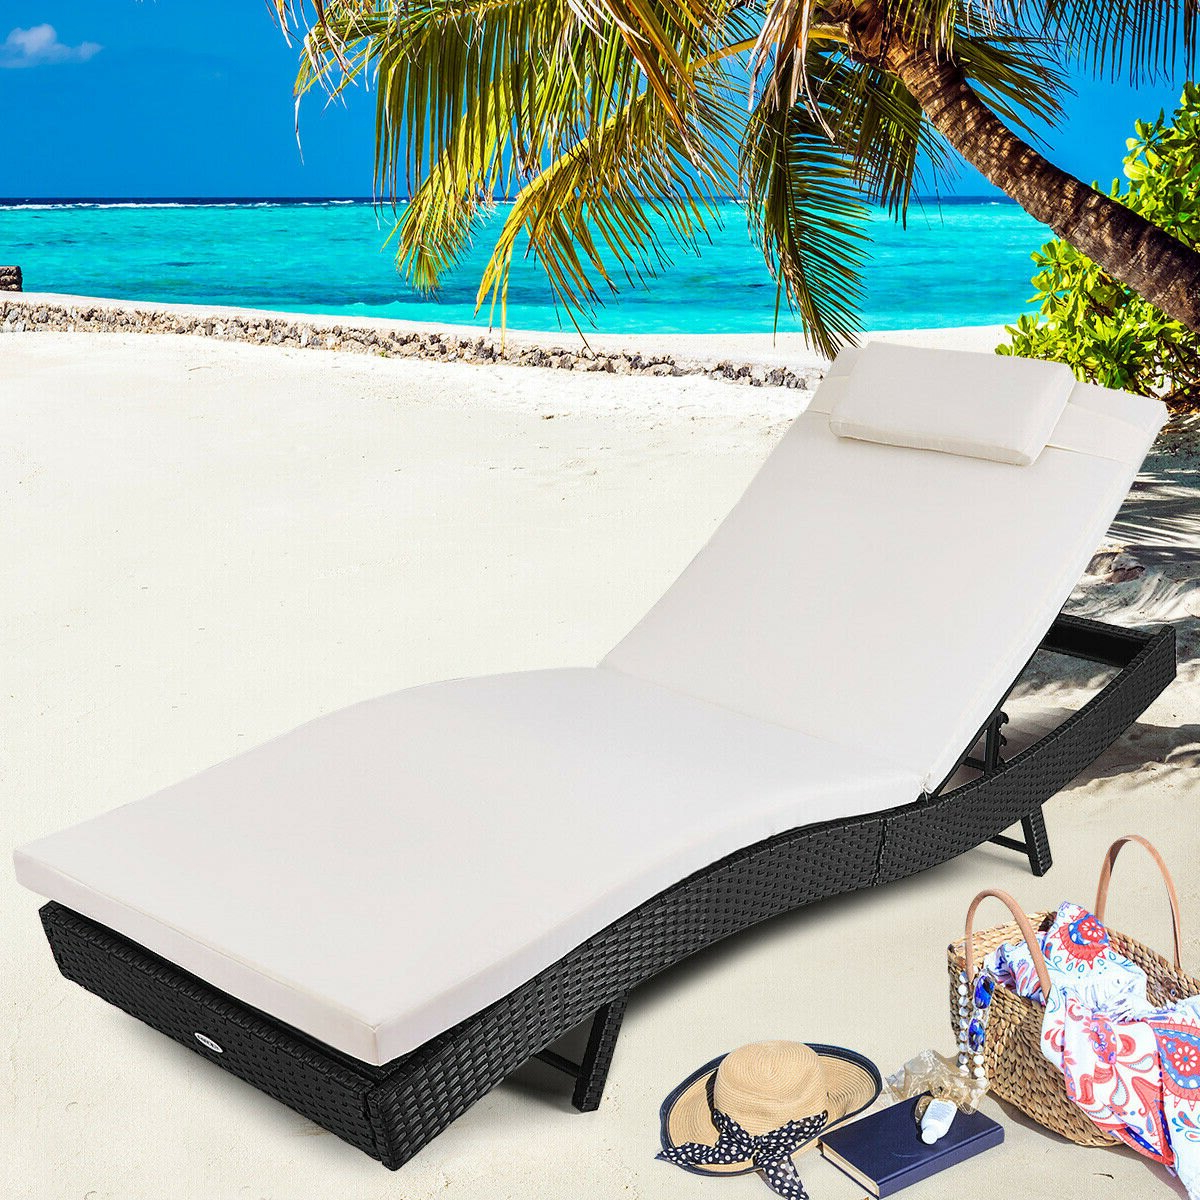 Costway Adjustable Pool Chaise Lounge Chair Outdoor Patio Furniture Pe  Wicker W/cushion Within Most Popular White Wicker Adjustable Chaise Loungers With Cushions (View 4 of 25)